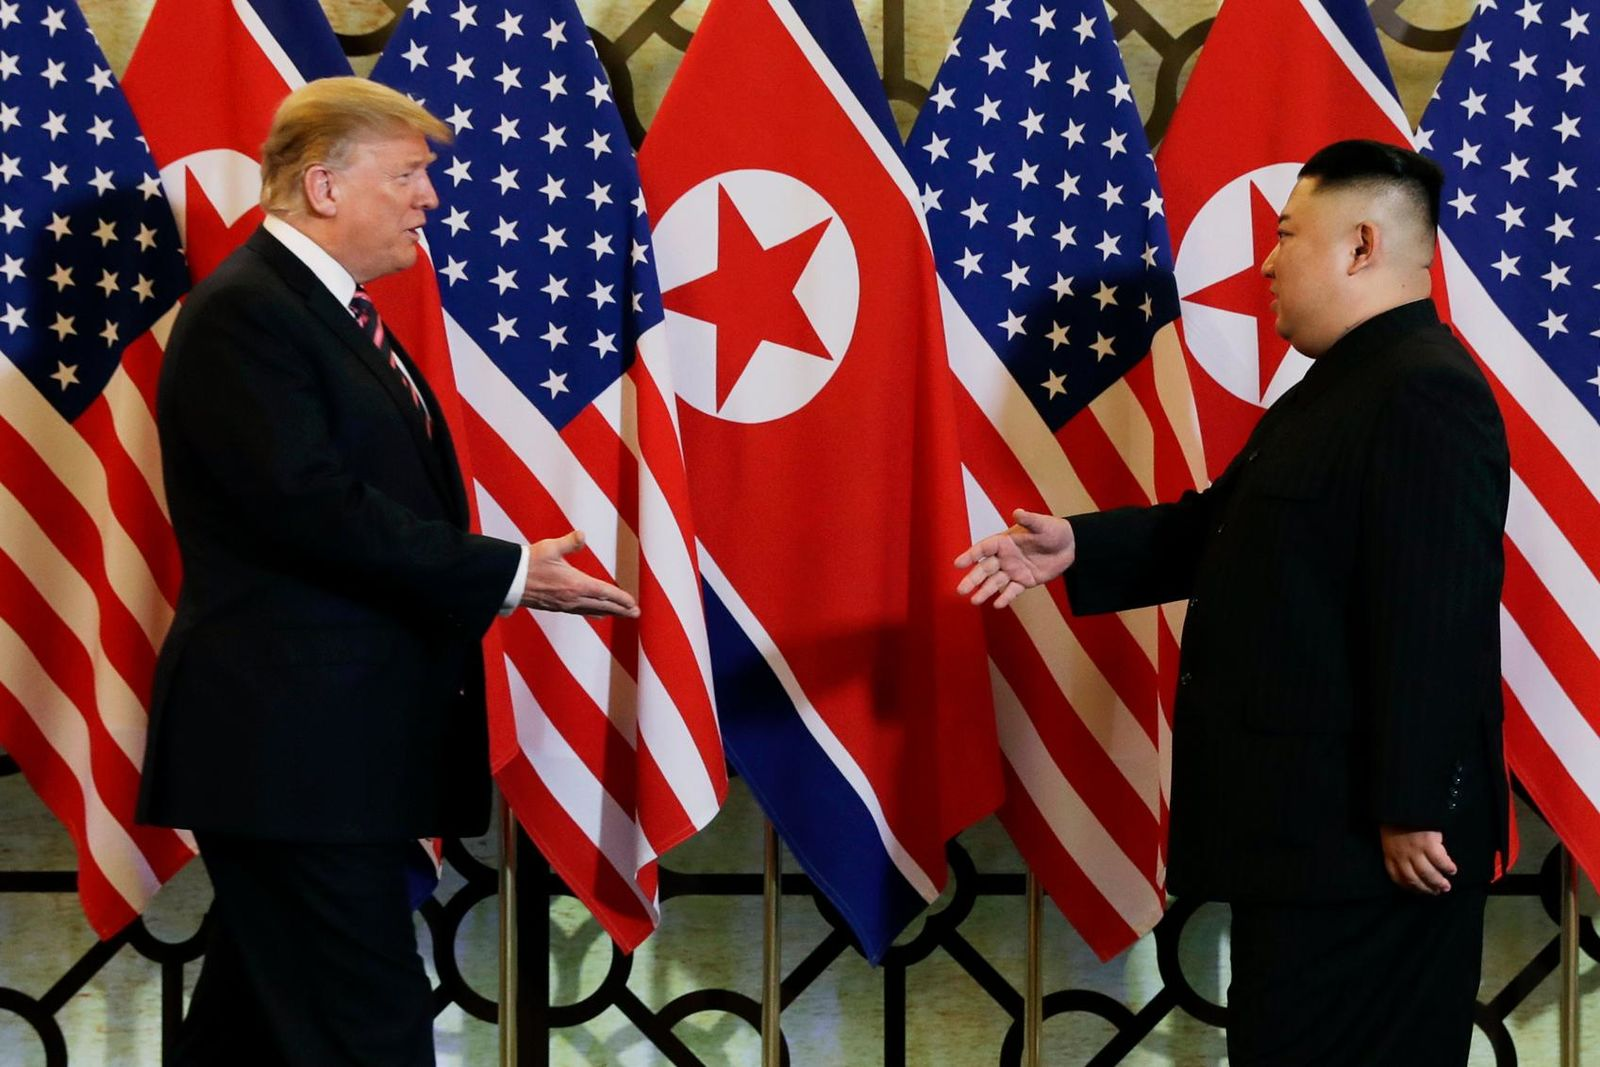 FILE - In this Feb. 27, 2019, file photo, President Donald Trump meets North Korean leader Kim Jong Un in Hanoi. (AP Photo/ Evan Vucci, File)